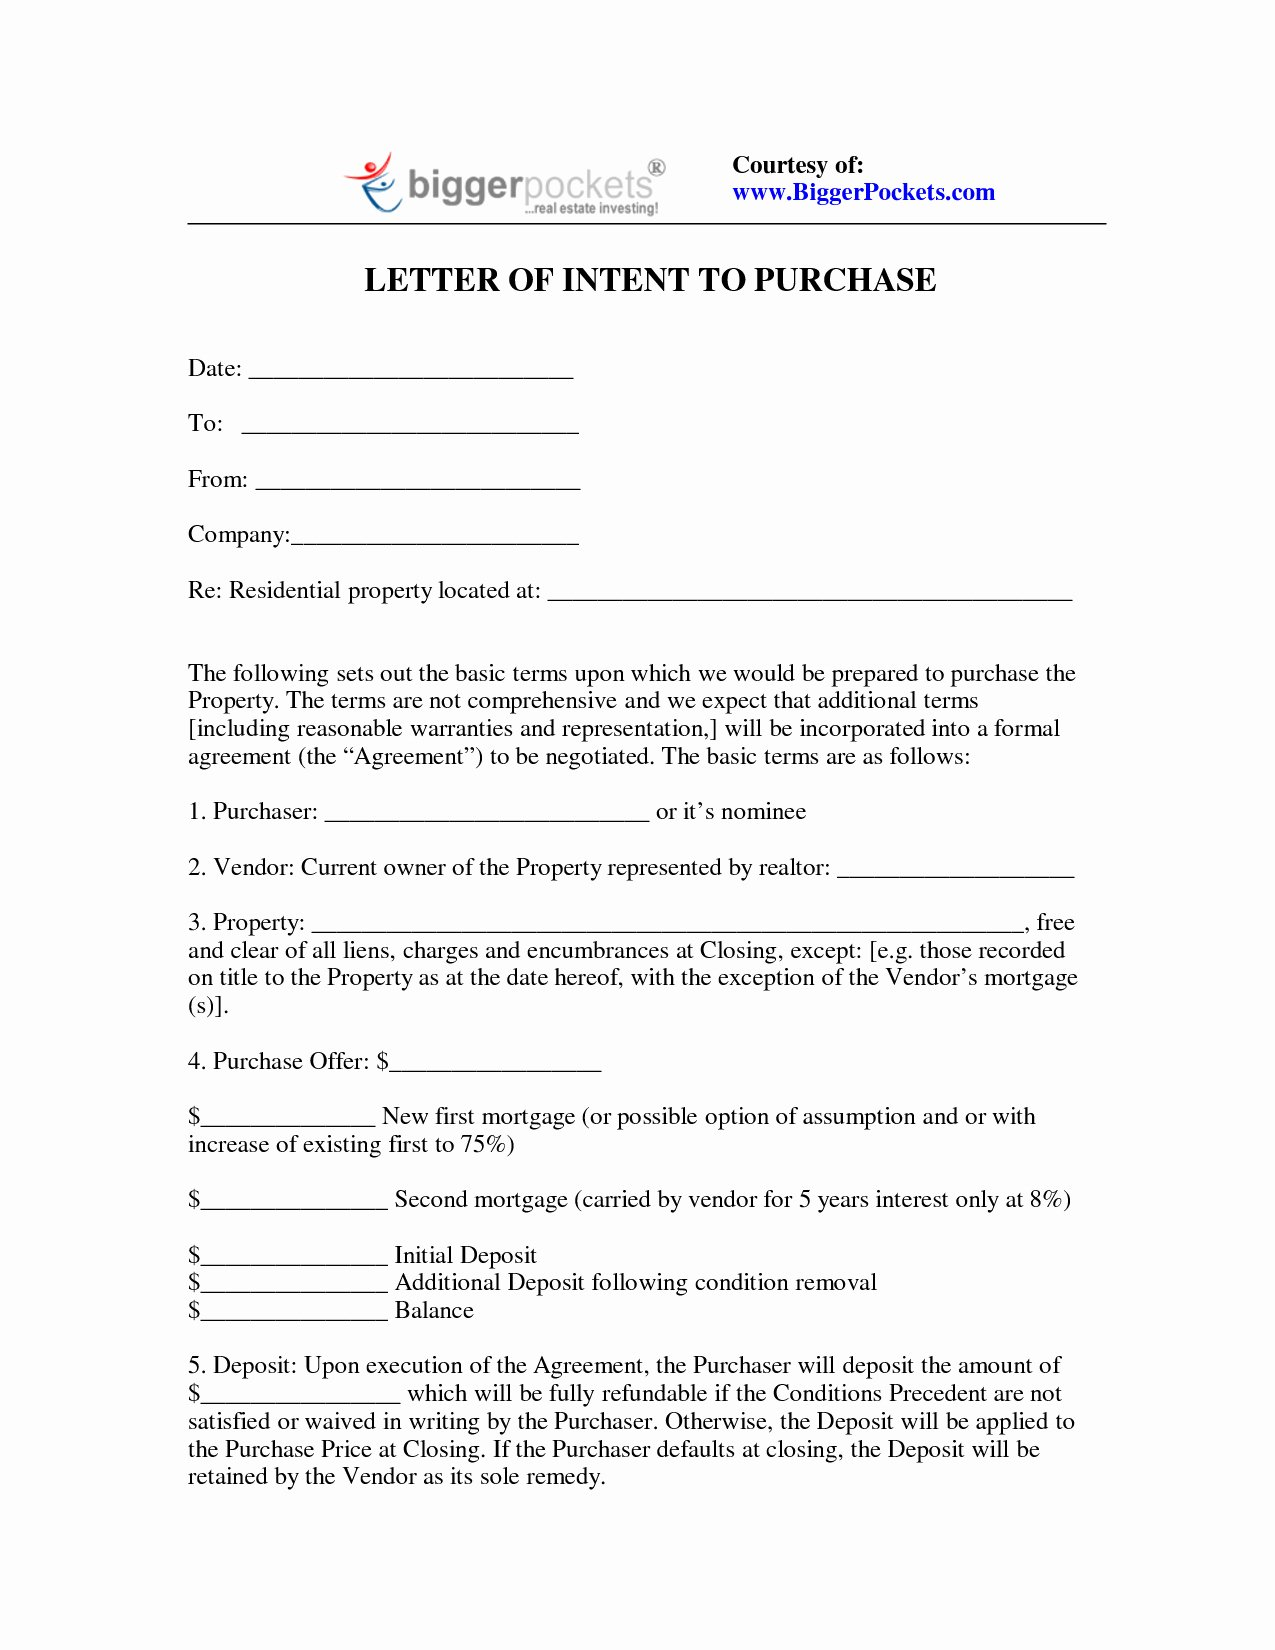 Letter Of Intent to Purchase Real Estate Template Best Of Letter Intent to Purchase Land Template Samples